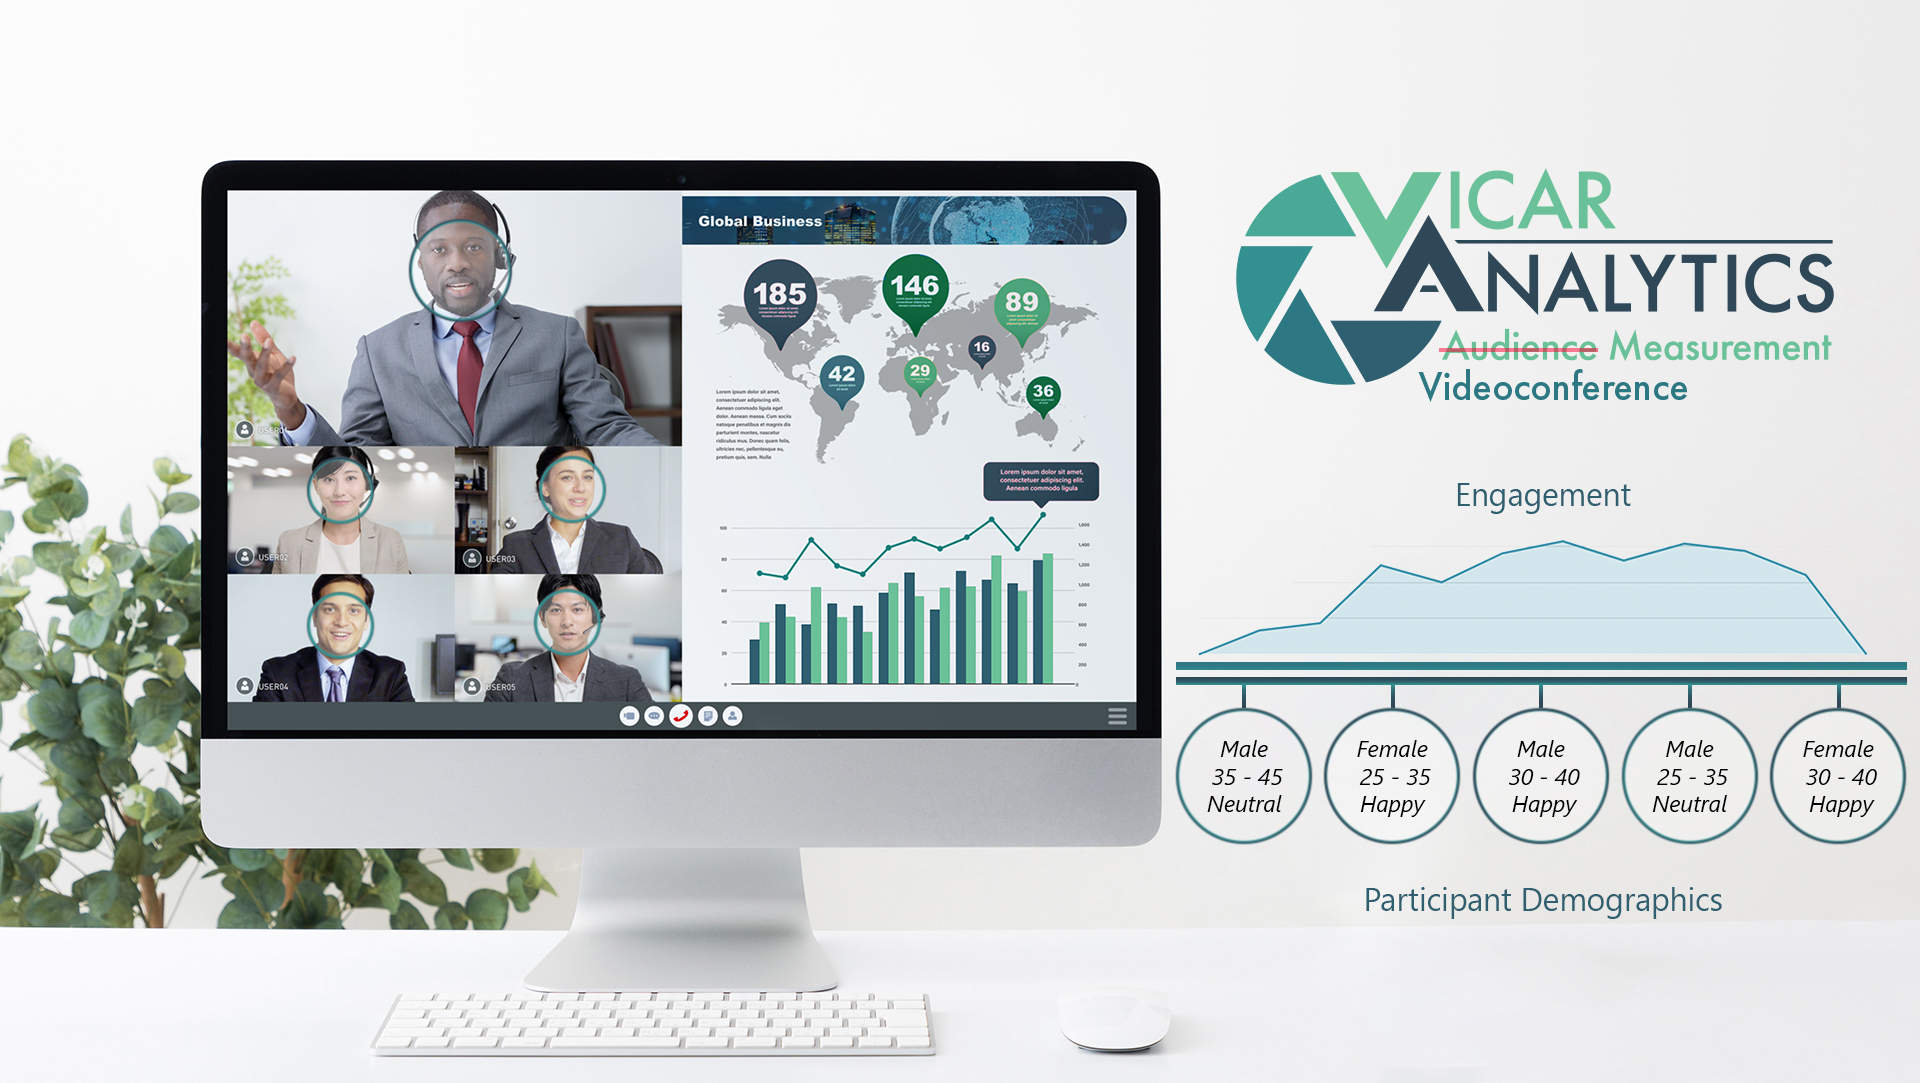 Vicar Analytics for Videoconferencing